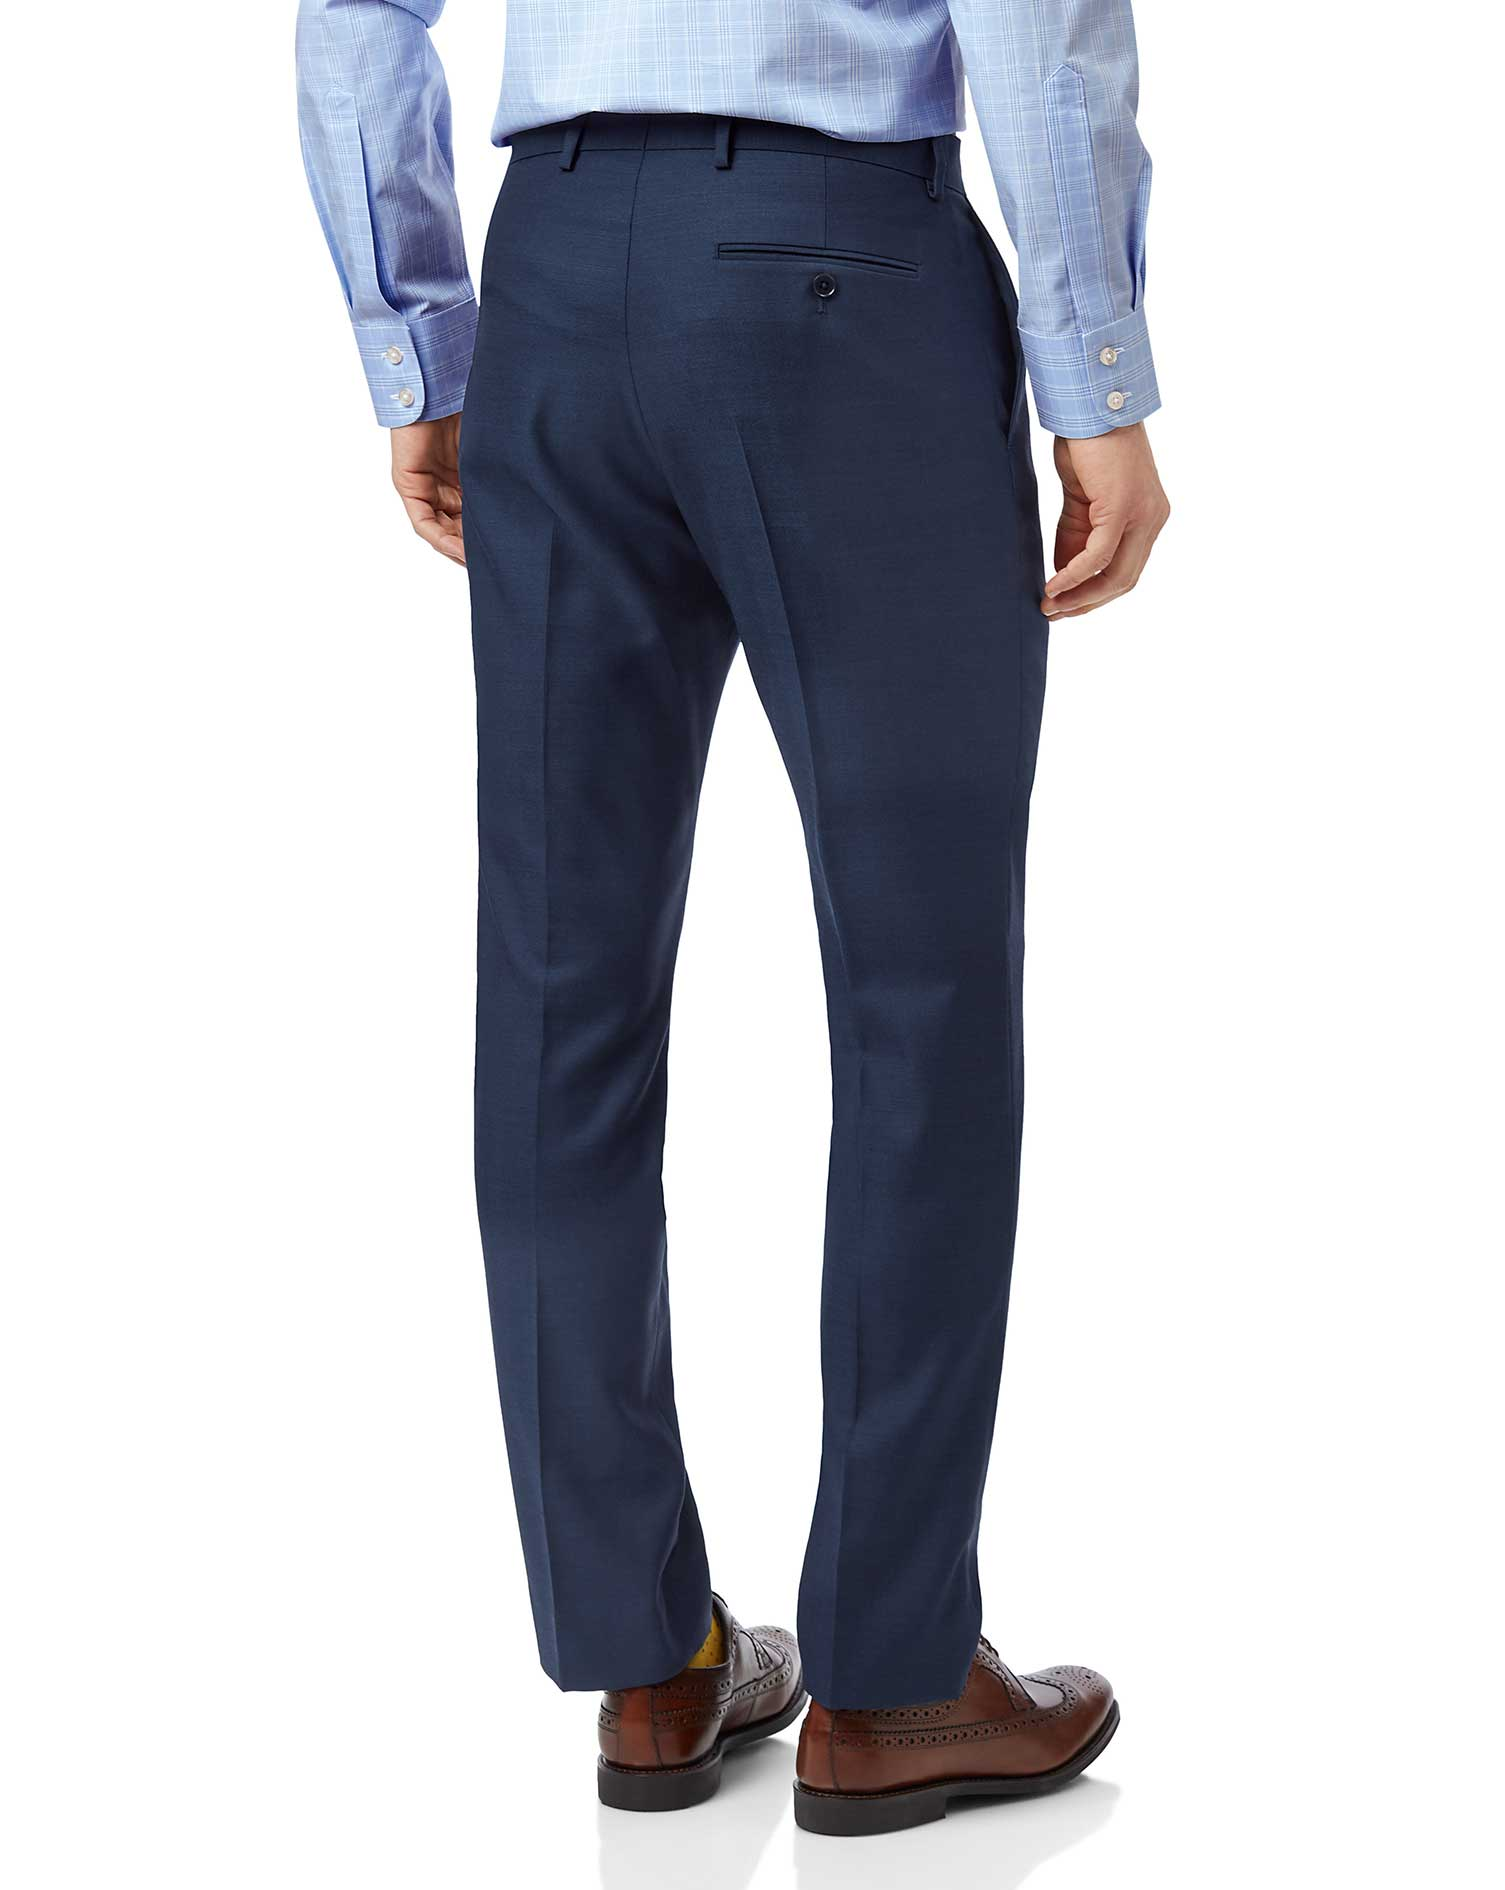 Blue slim fit twill business suit pants